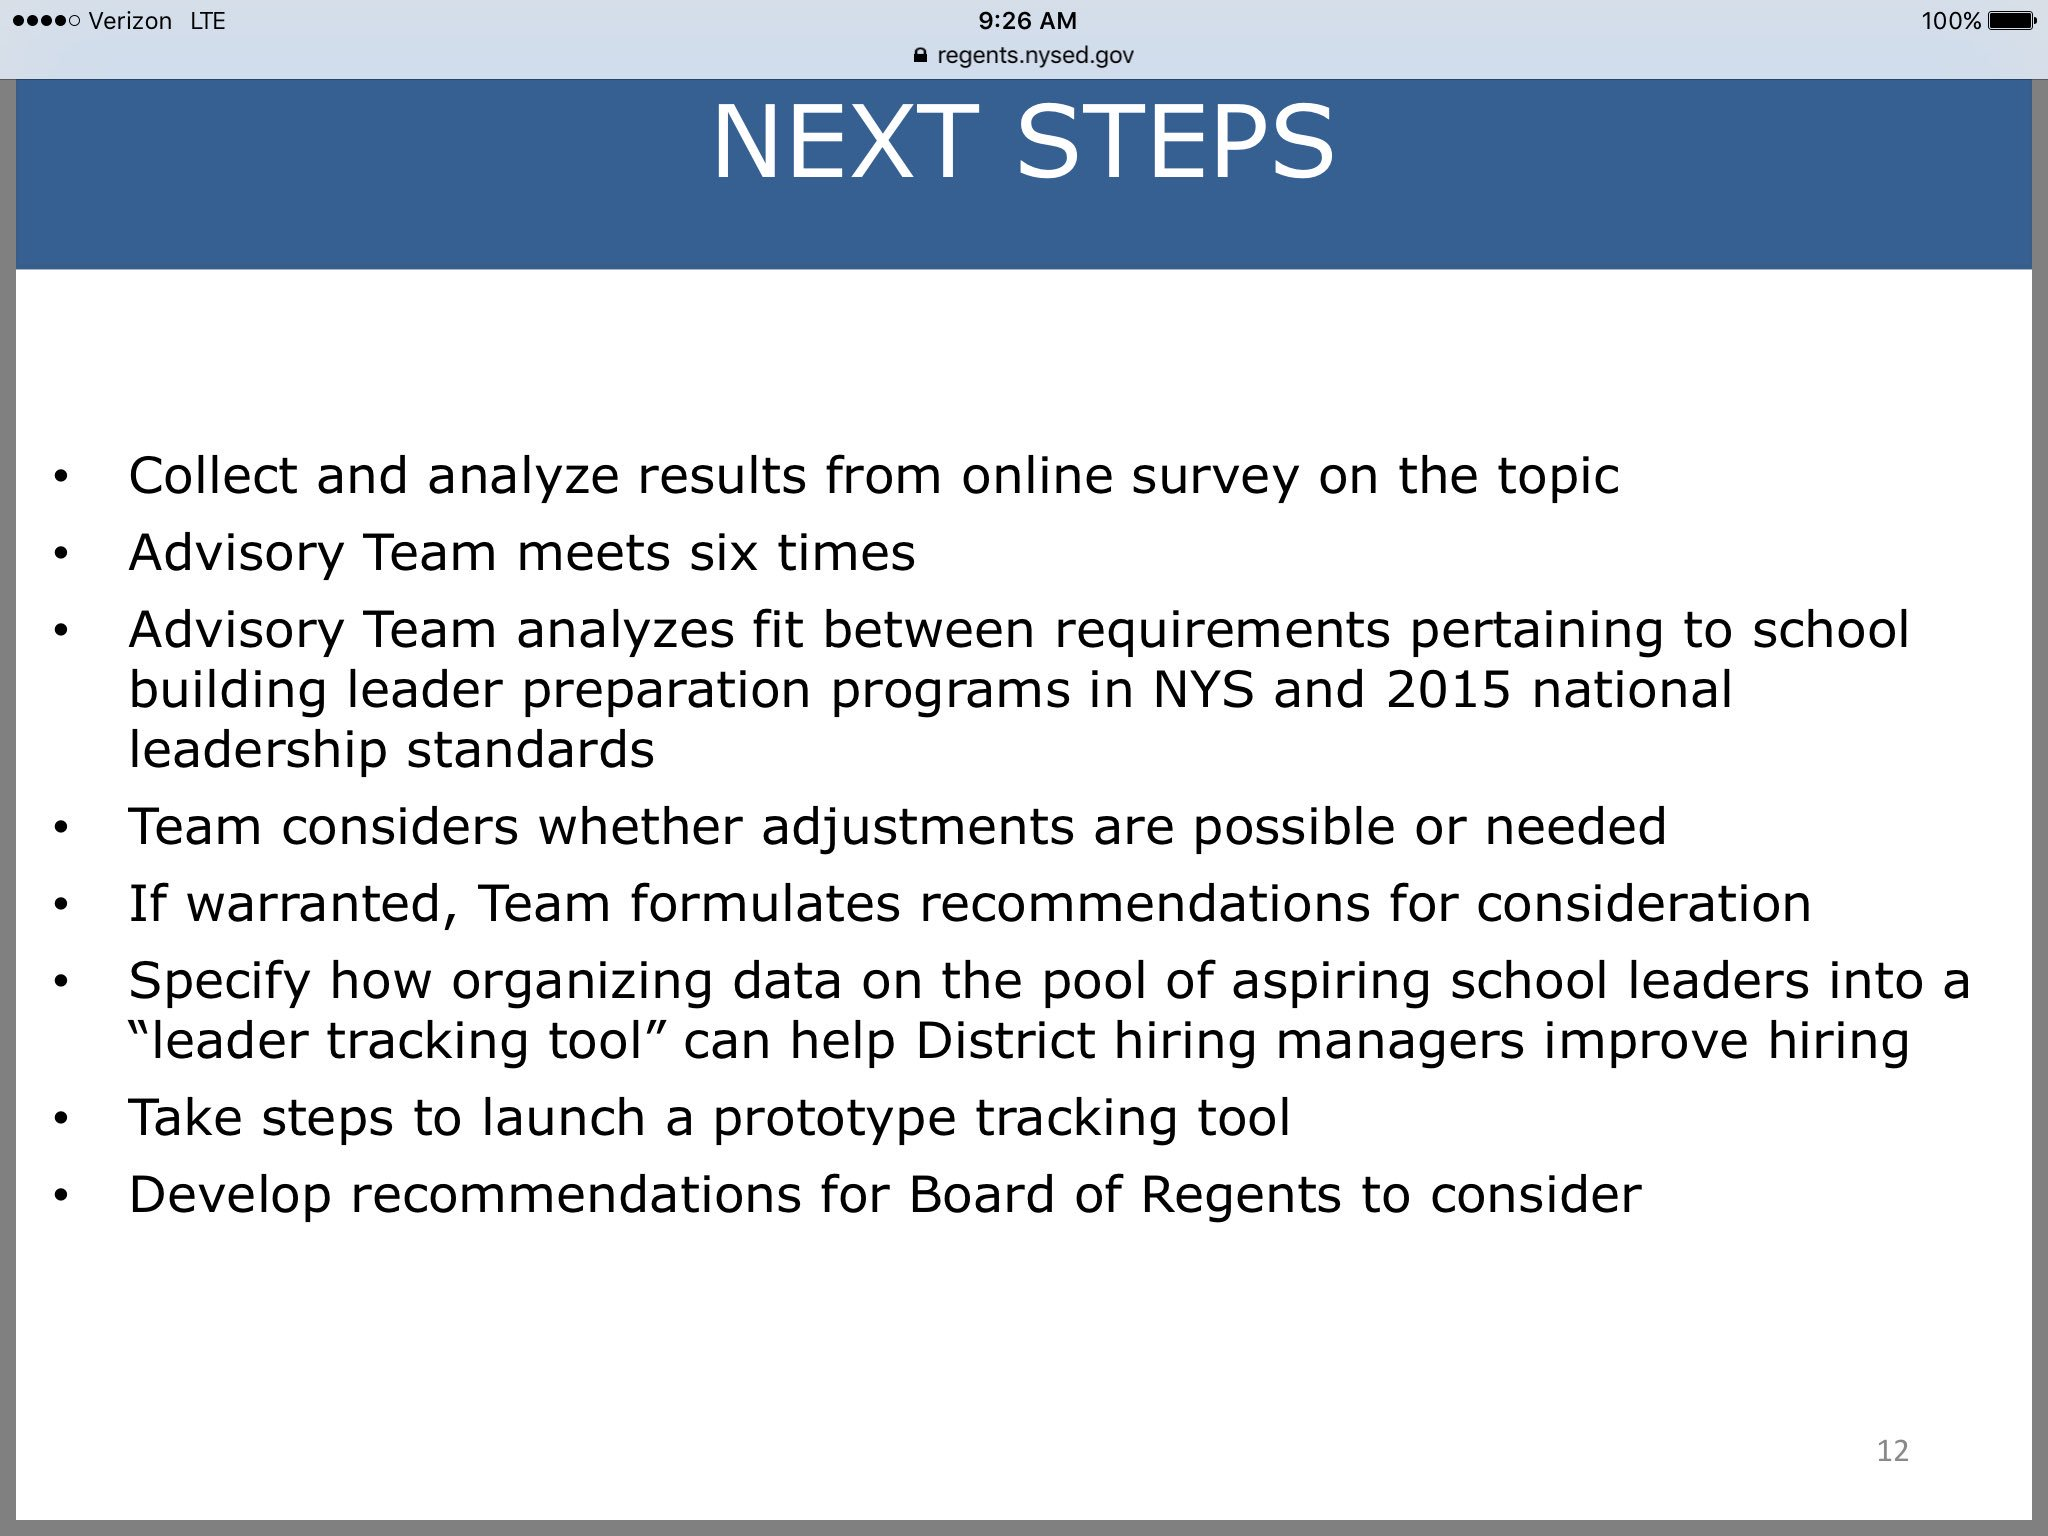 Next steps for Principal project @NYSEDNews @NYSPTA https://t.co/JKnm3bpQbm